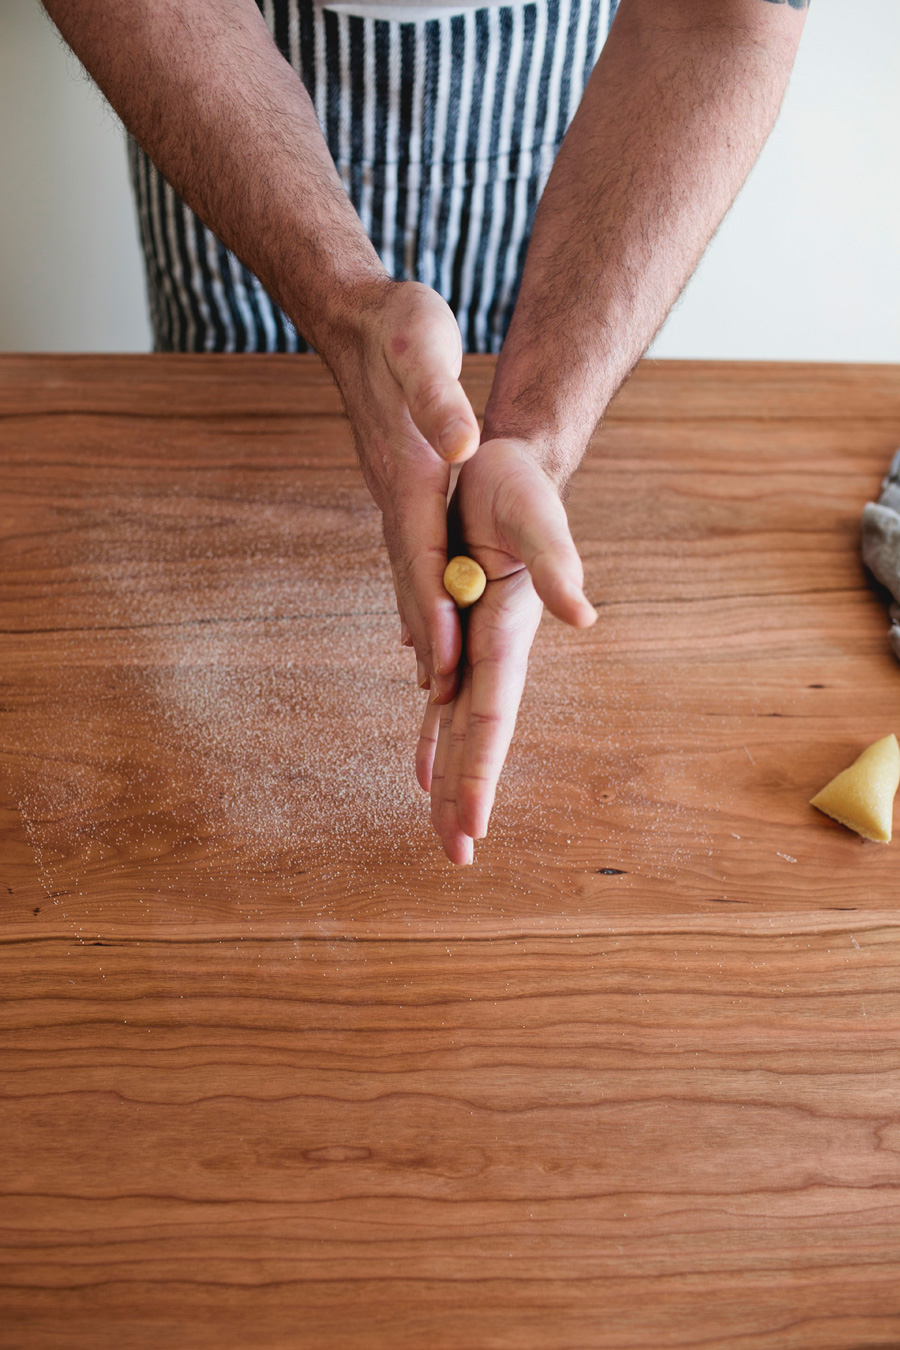 how to shape cavatelli and fettuccine // a thousand threads